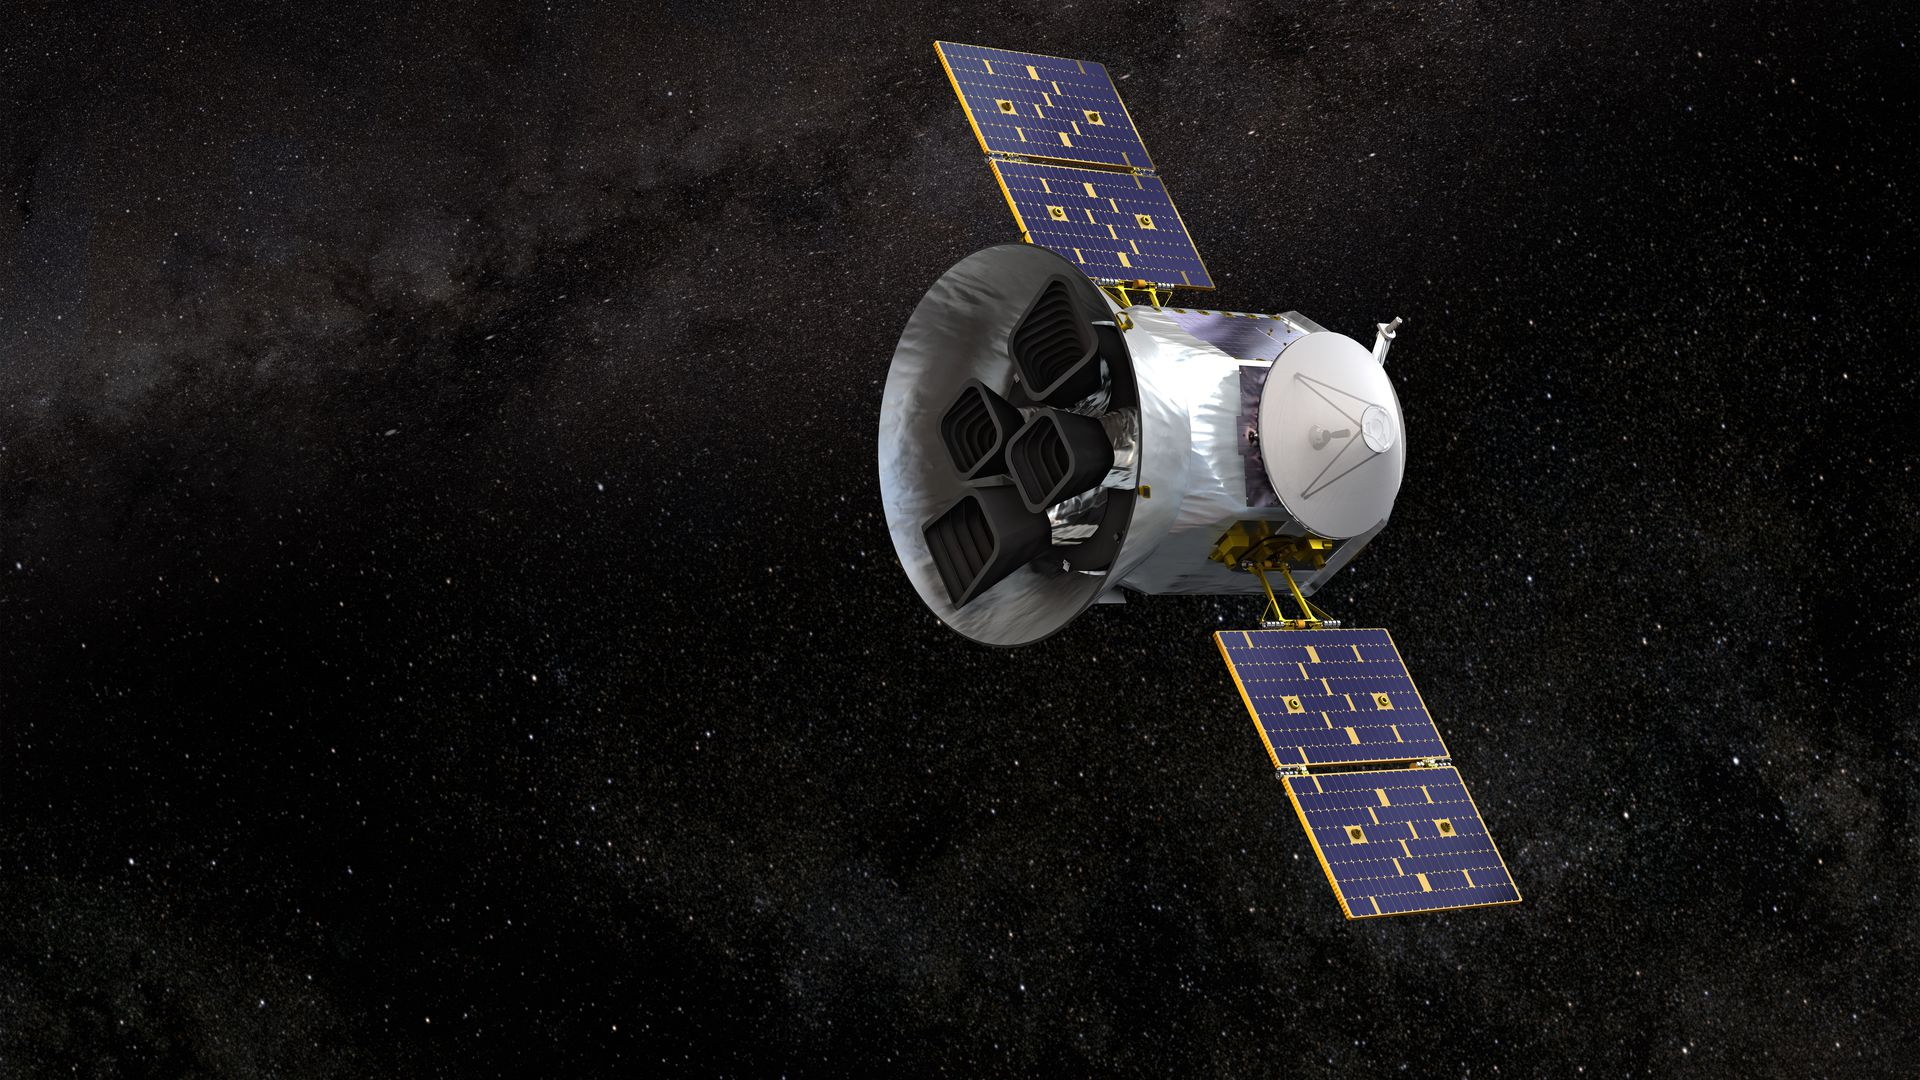 Artist's rendition of TESS in space (Credit: NASA's Goddard Space Flight Center)